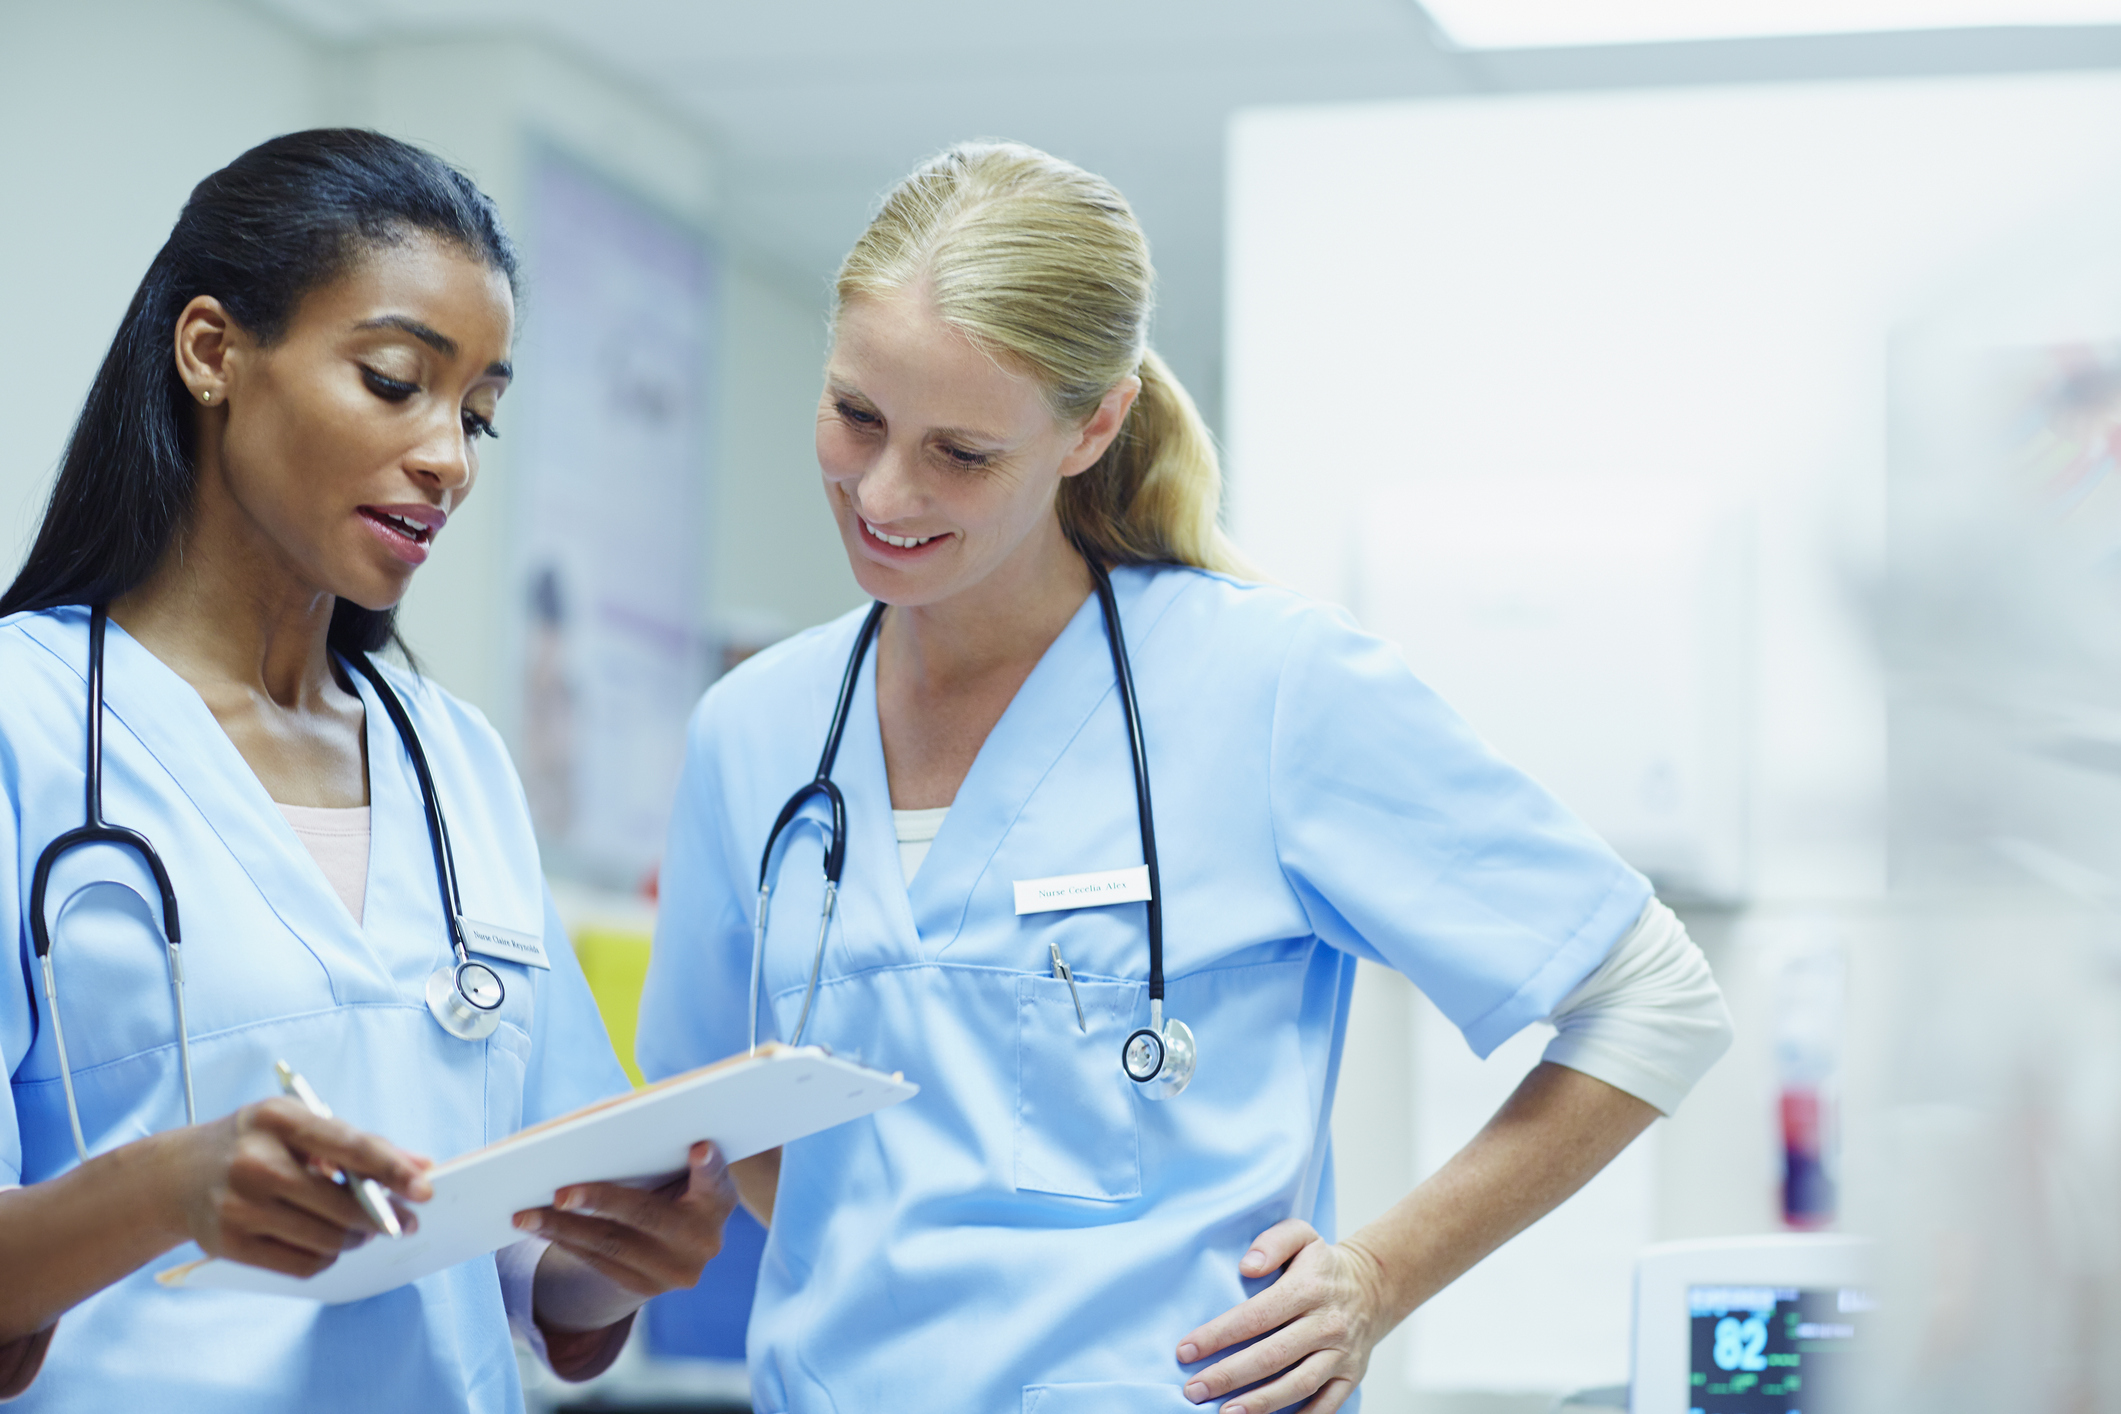 10 Graduate Nursing Programs With The Highest Acceptance